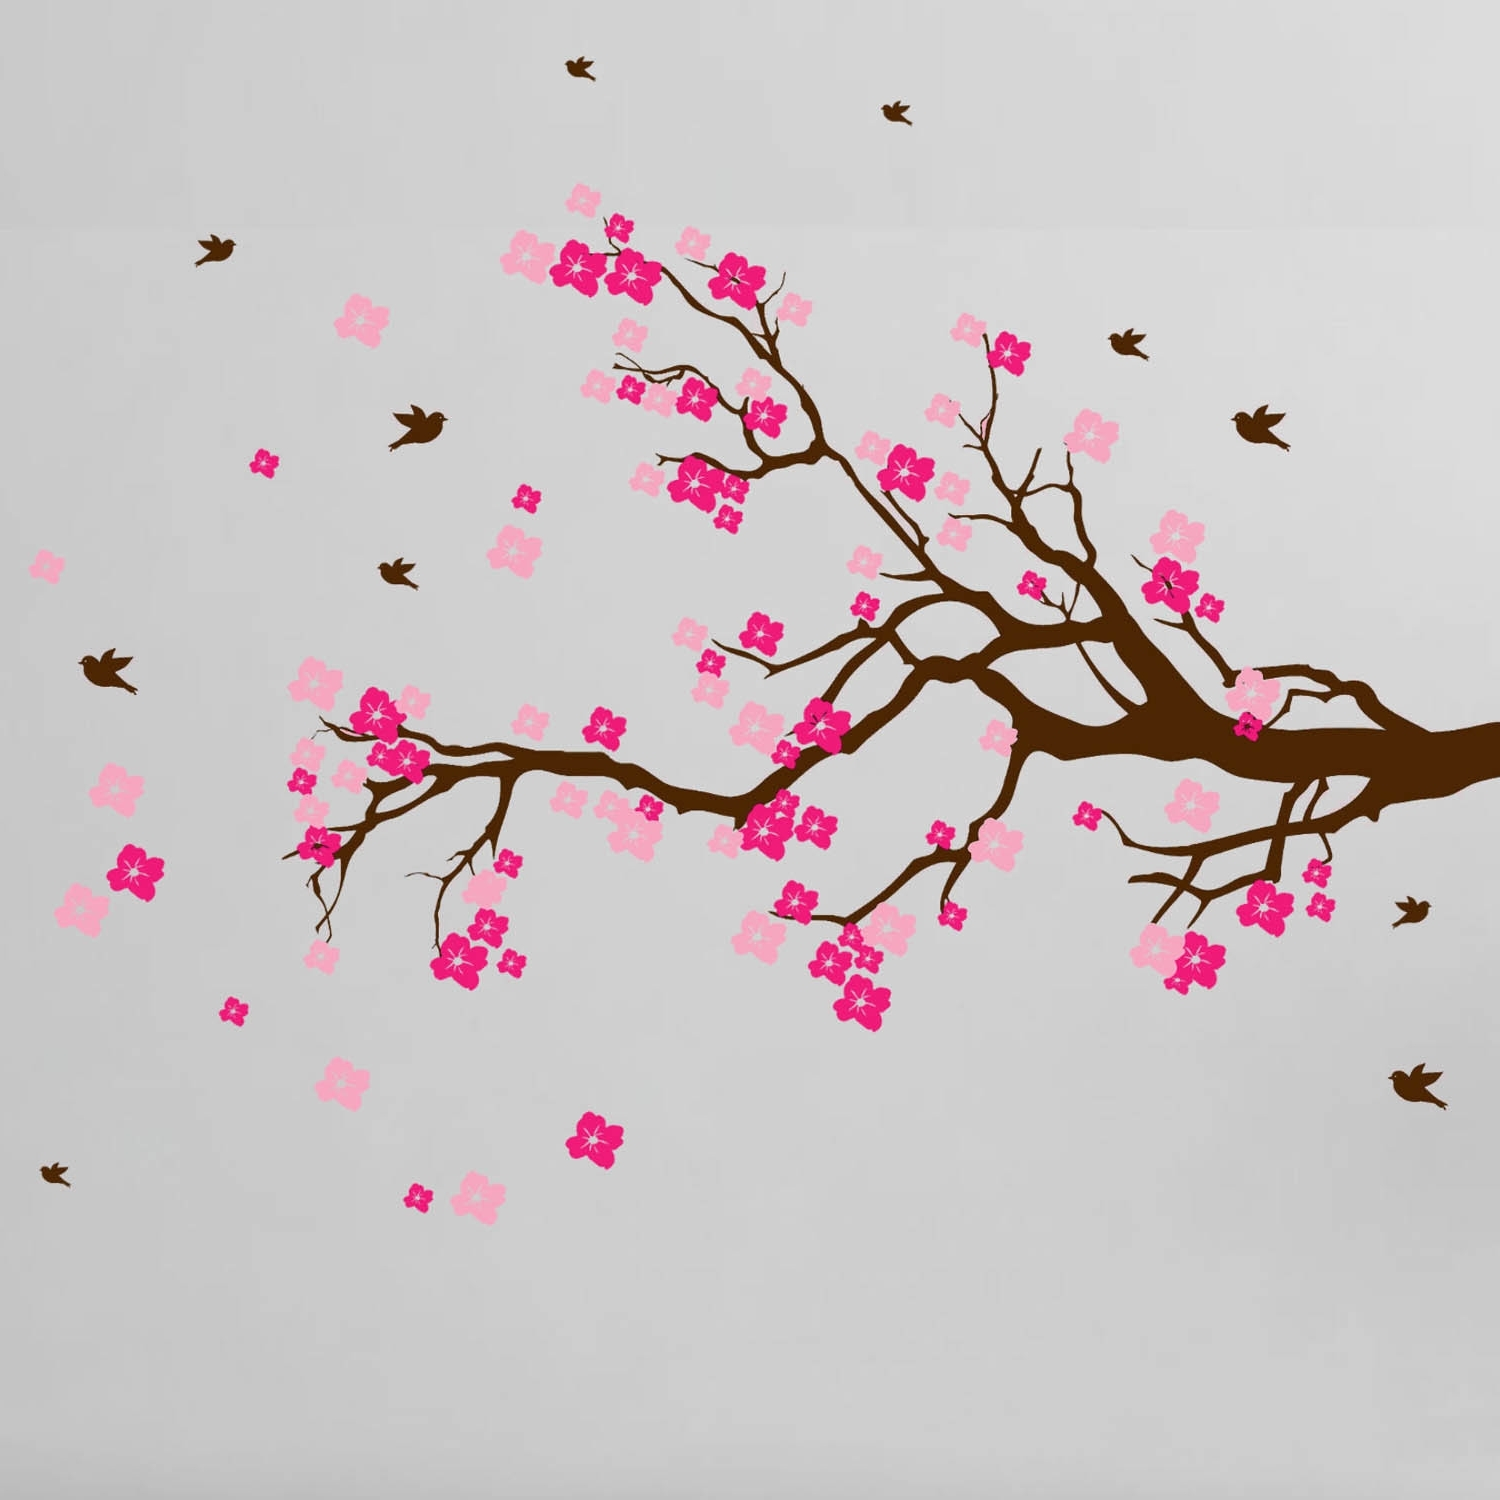 Best And Newest Shop Cherry Blossom Branch With Birds Vinyl Wall Art Decal – Free With Regard To Cherry Blossom Wall Art (Gallery 4 of 20)